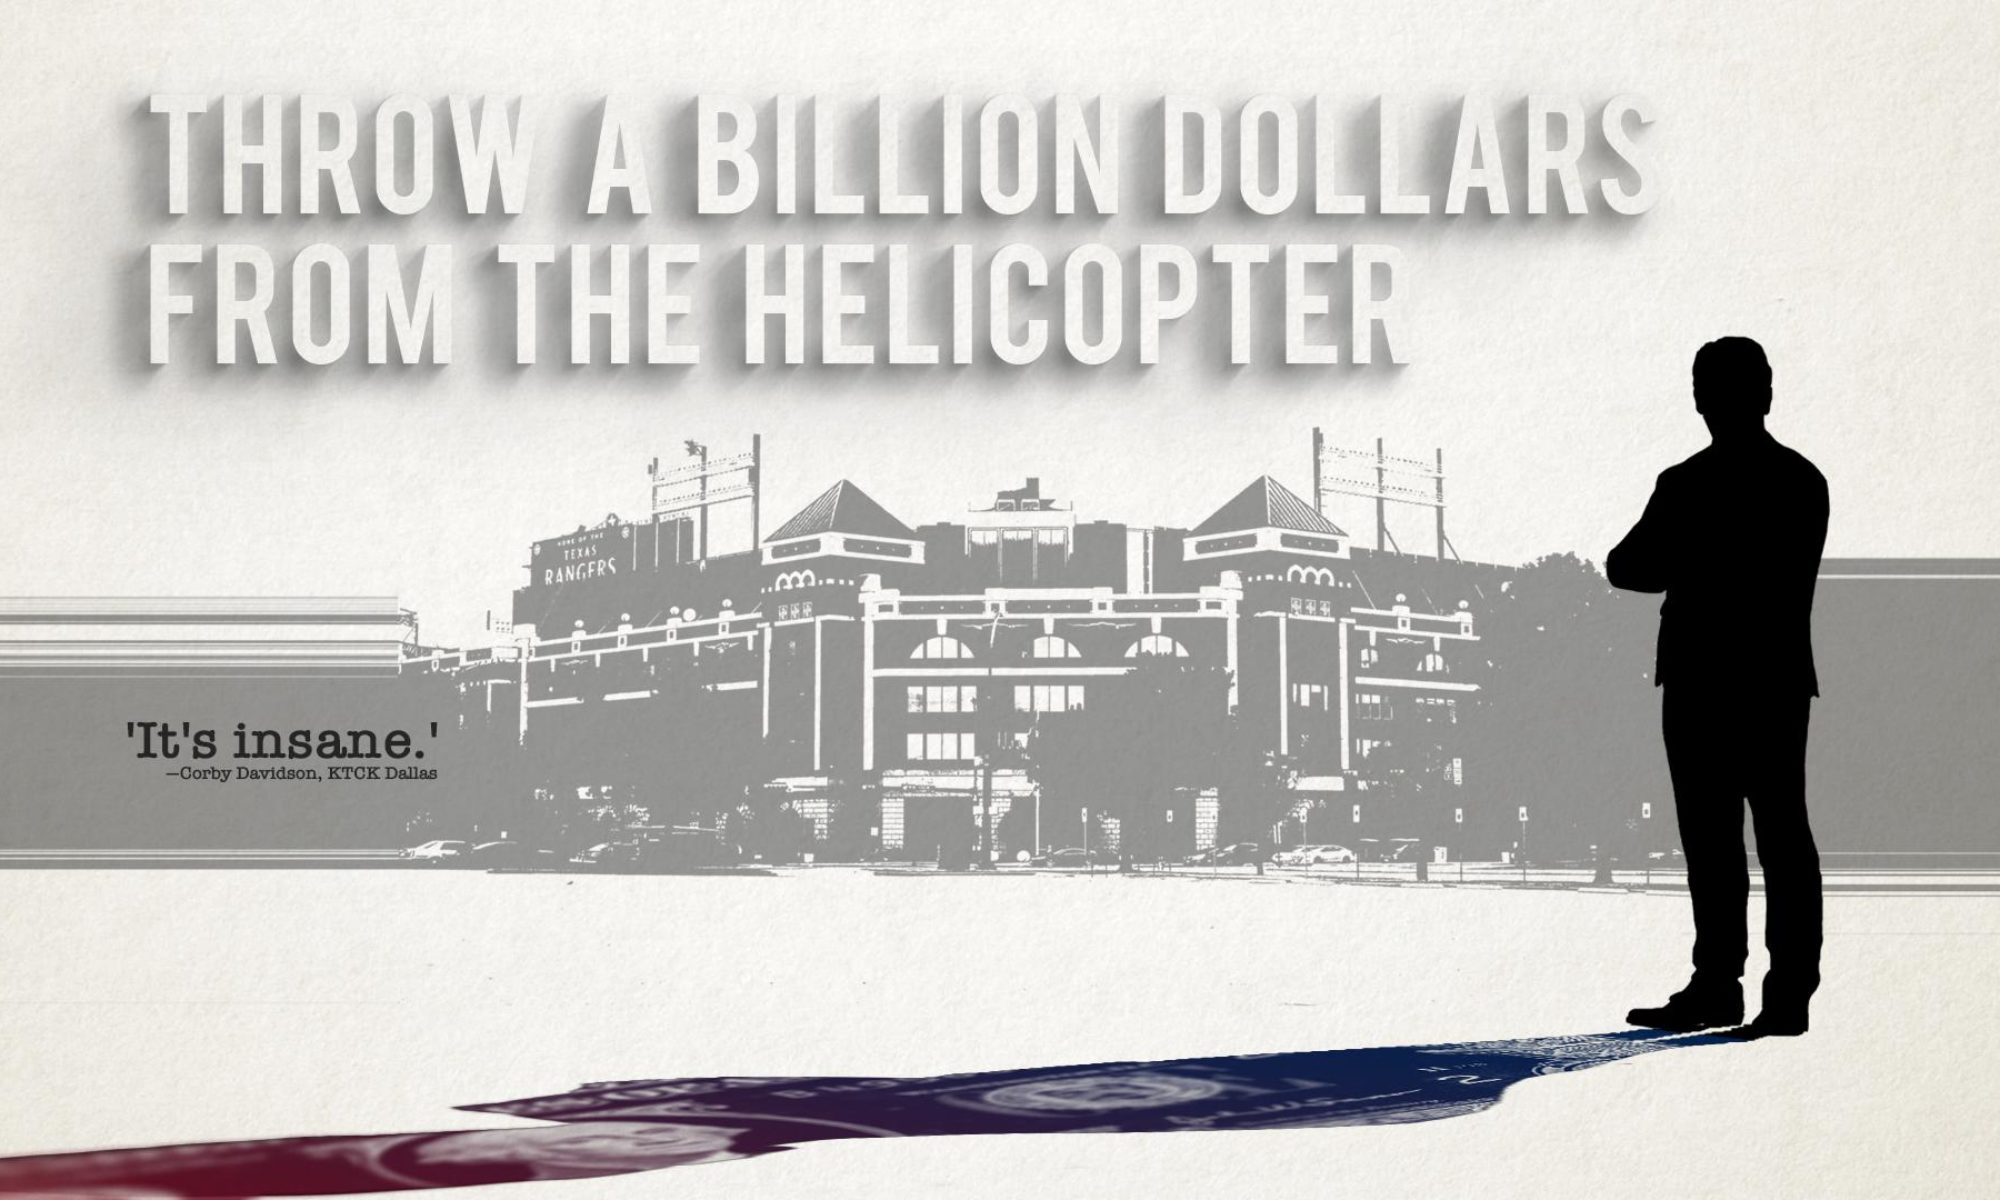 Throw A Billion Dollars From the Helicopter